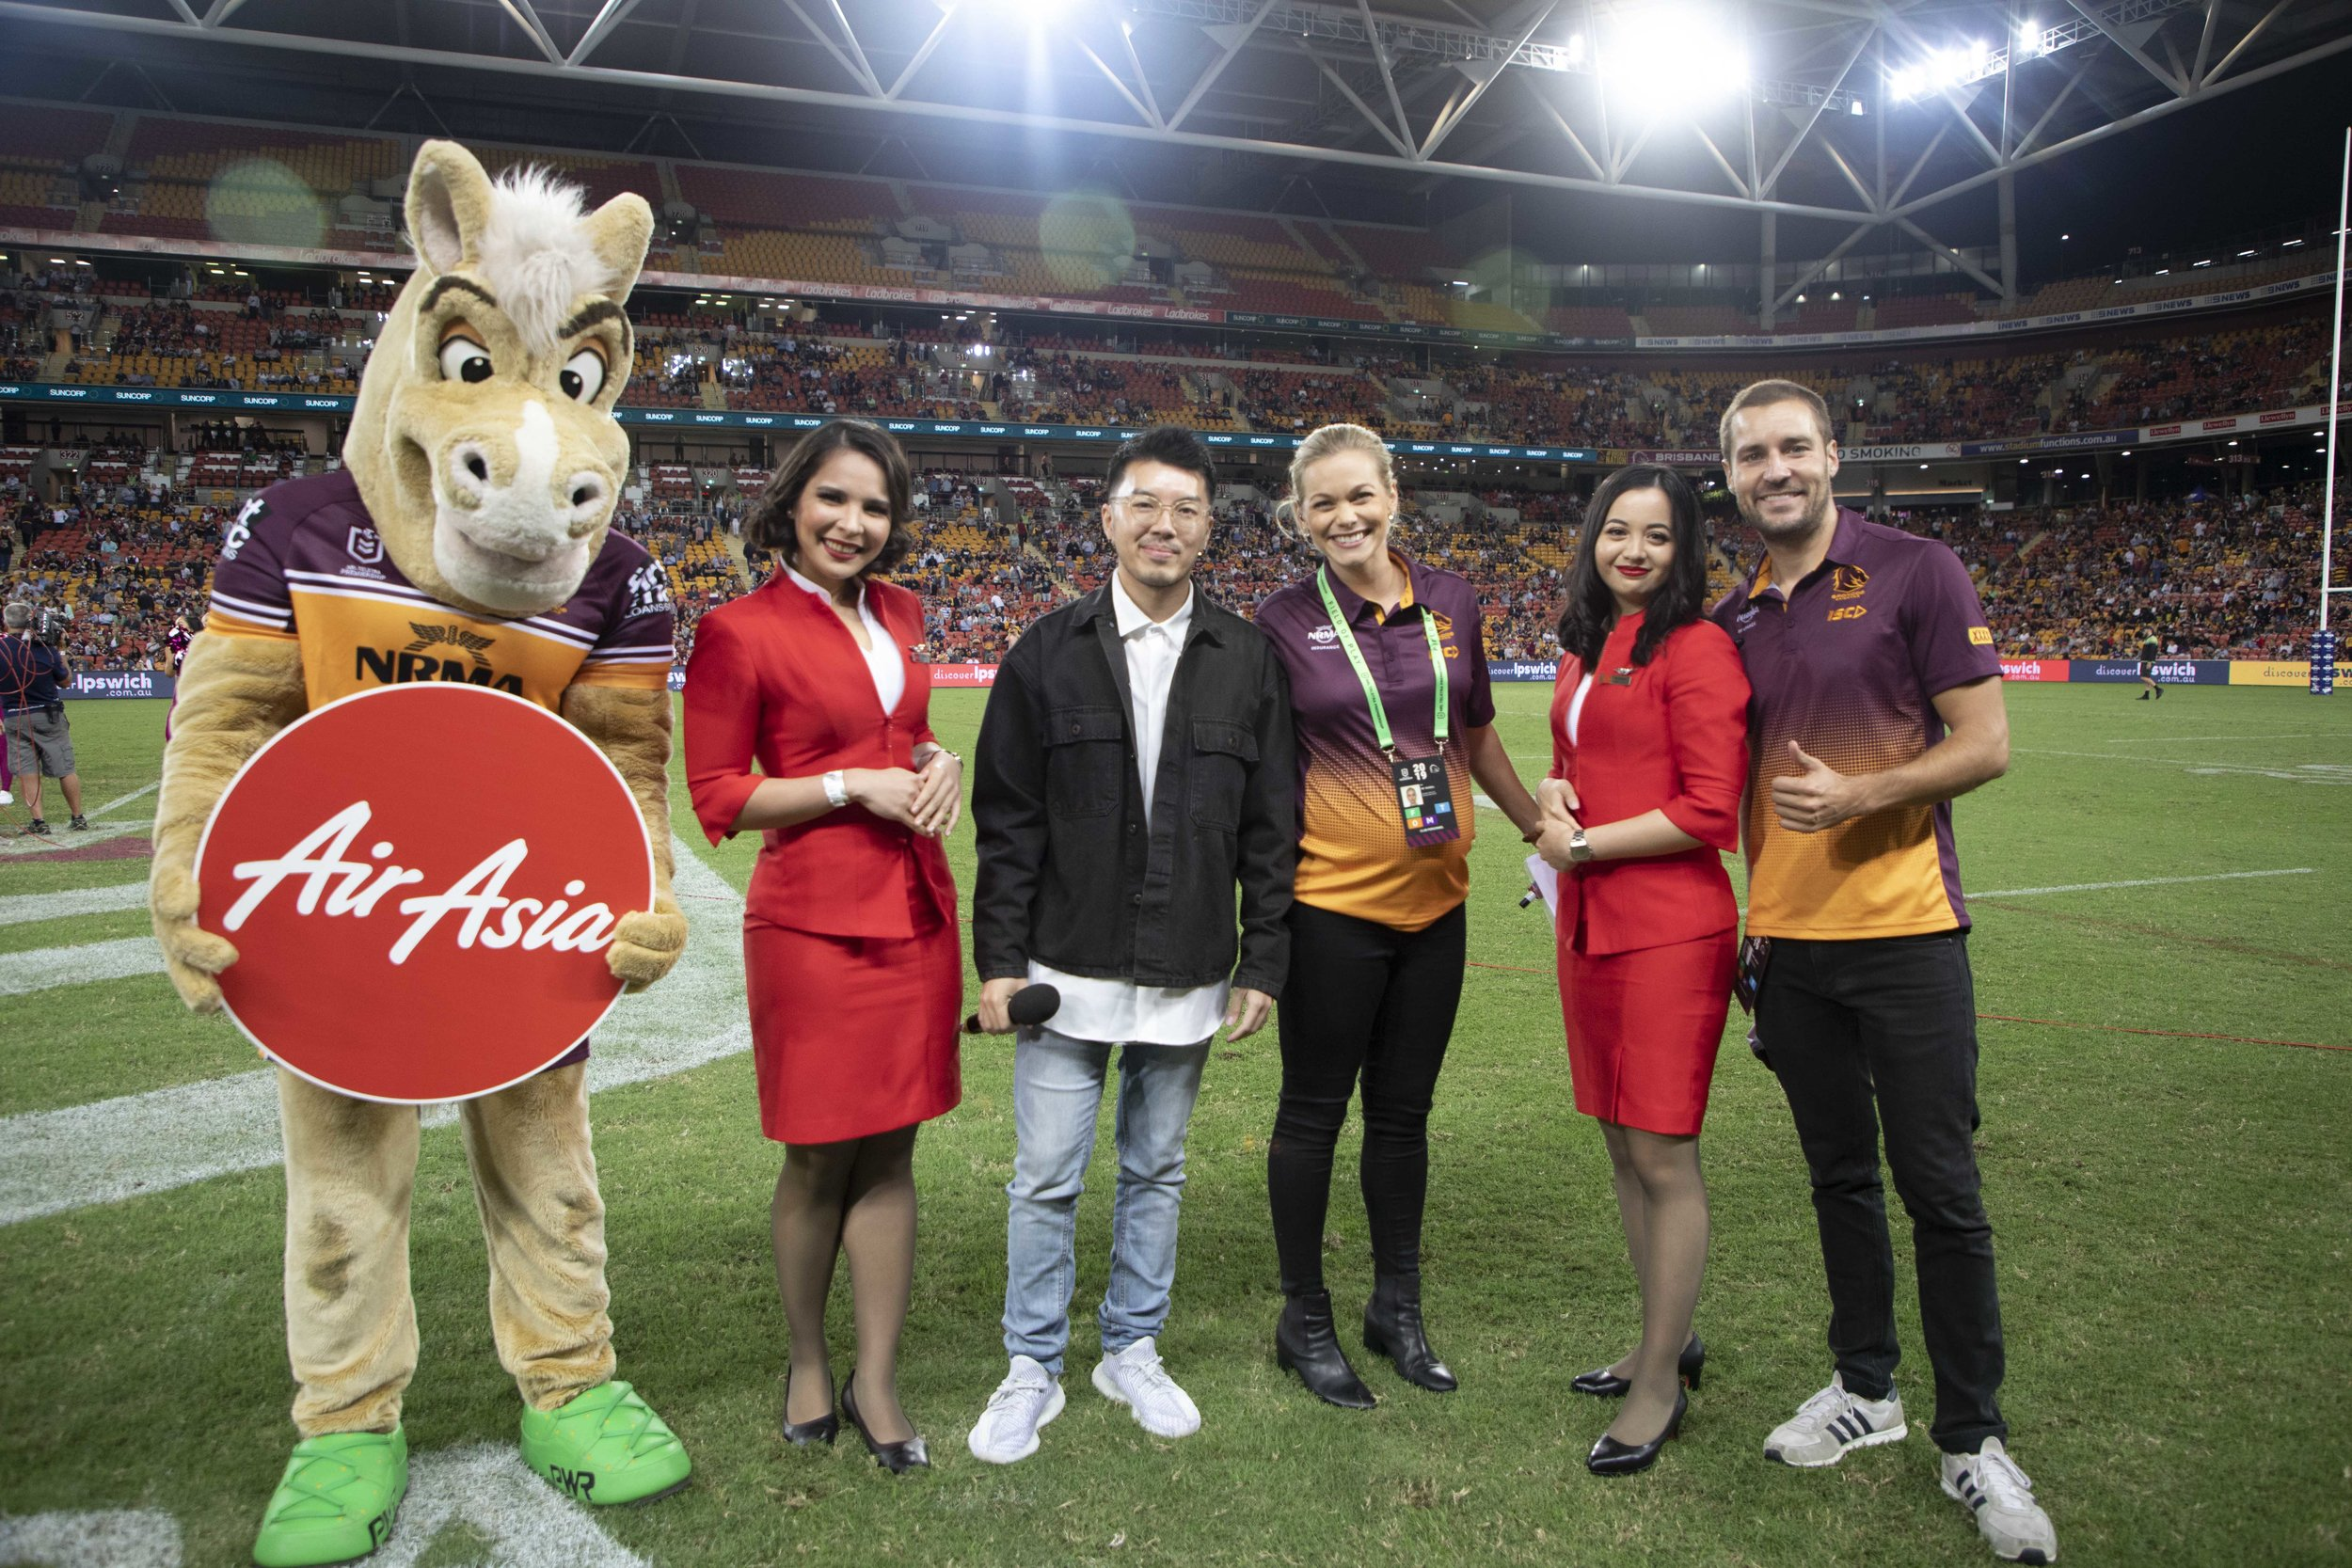 Photo Caption:  AirAsia Group Head of Branding Rudy Khaw (3rd from Left) with Buck the Brisbane Bronco, AirAsia Cabin Crew and Brisbane Bronco's Announcers Pip Russell and Dan Antsey at Suncorp Stadium